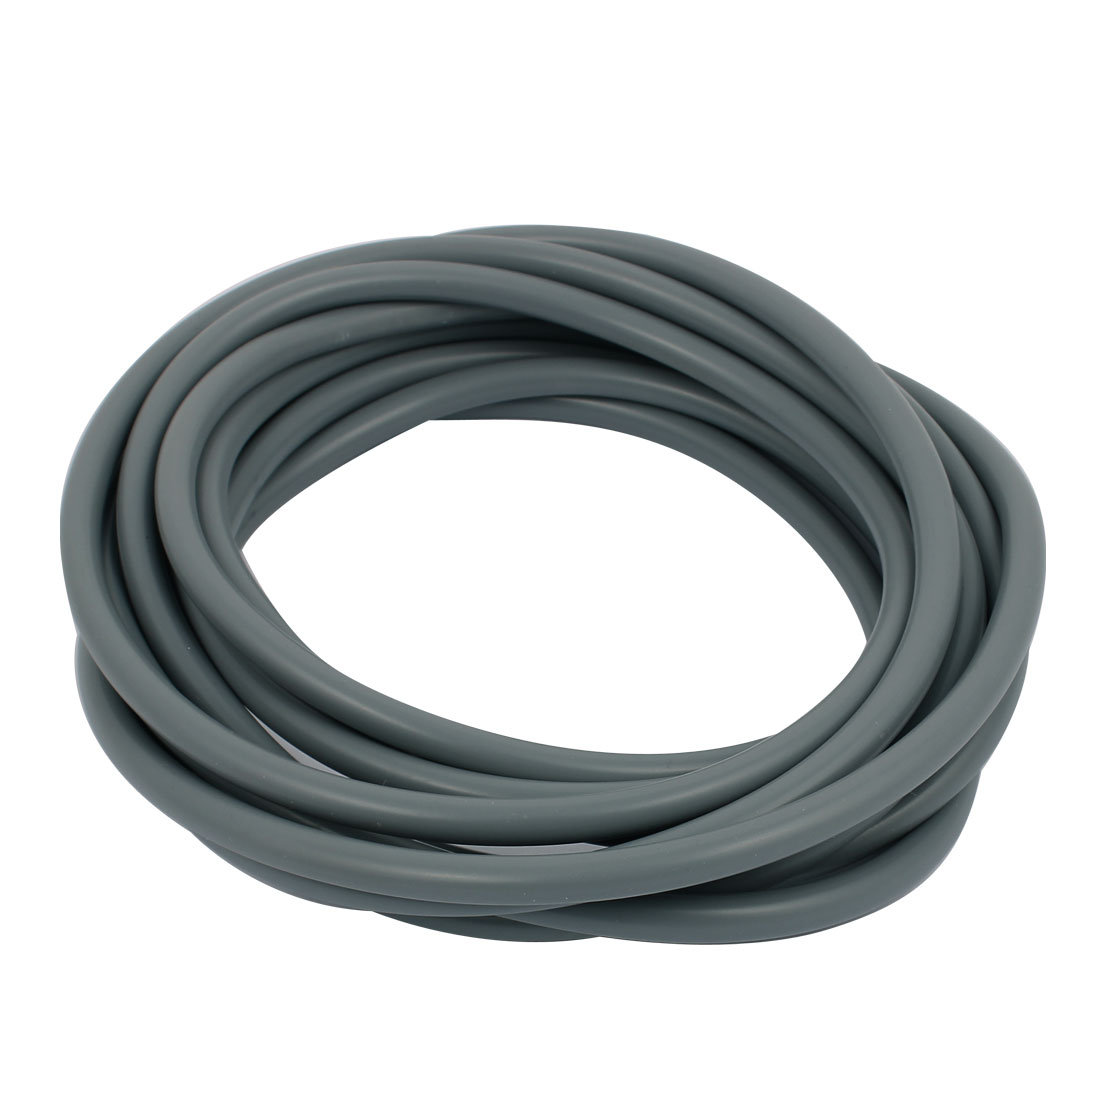 6mm x 8mm Gray Silicone Tube Water Air Pump Hose Pipe 5M Length